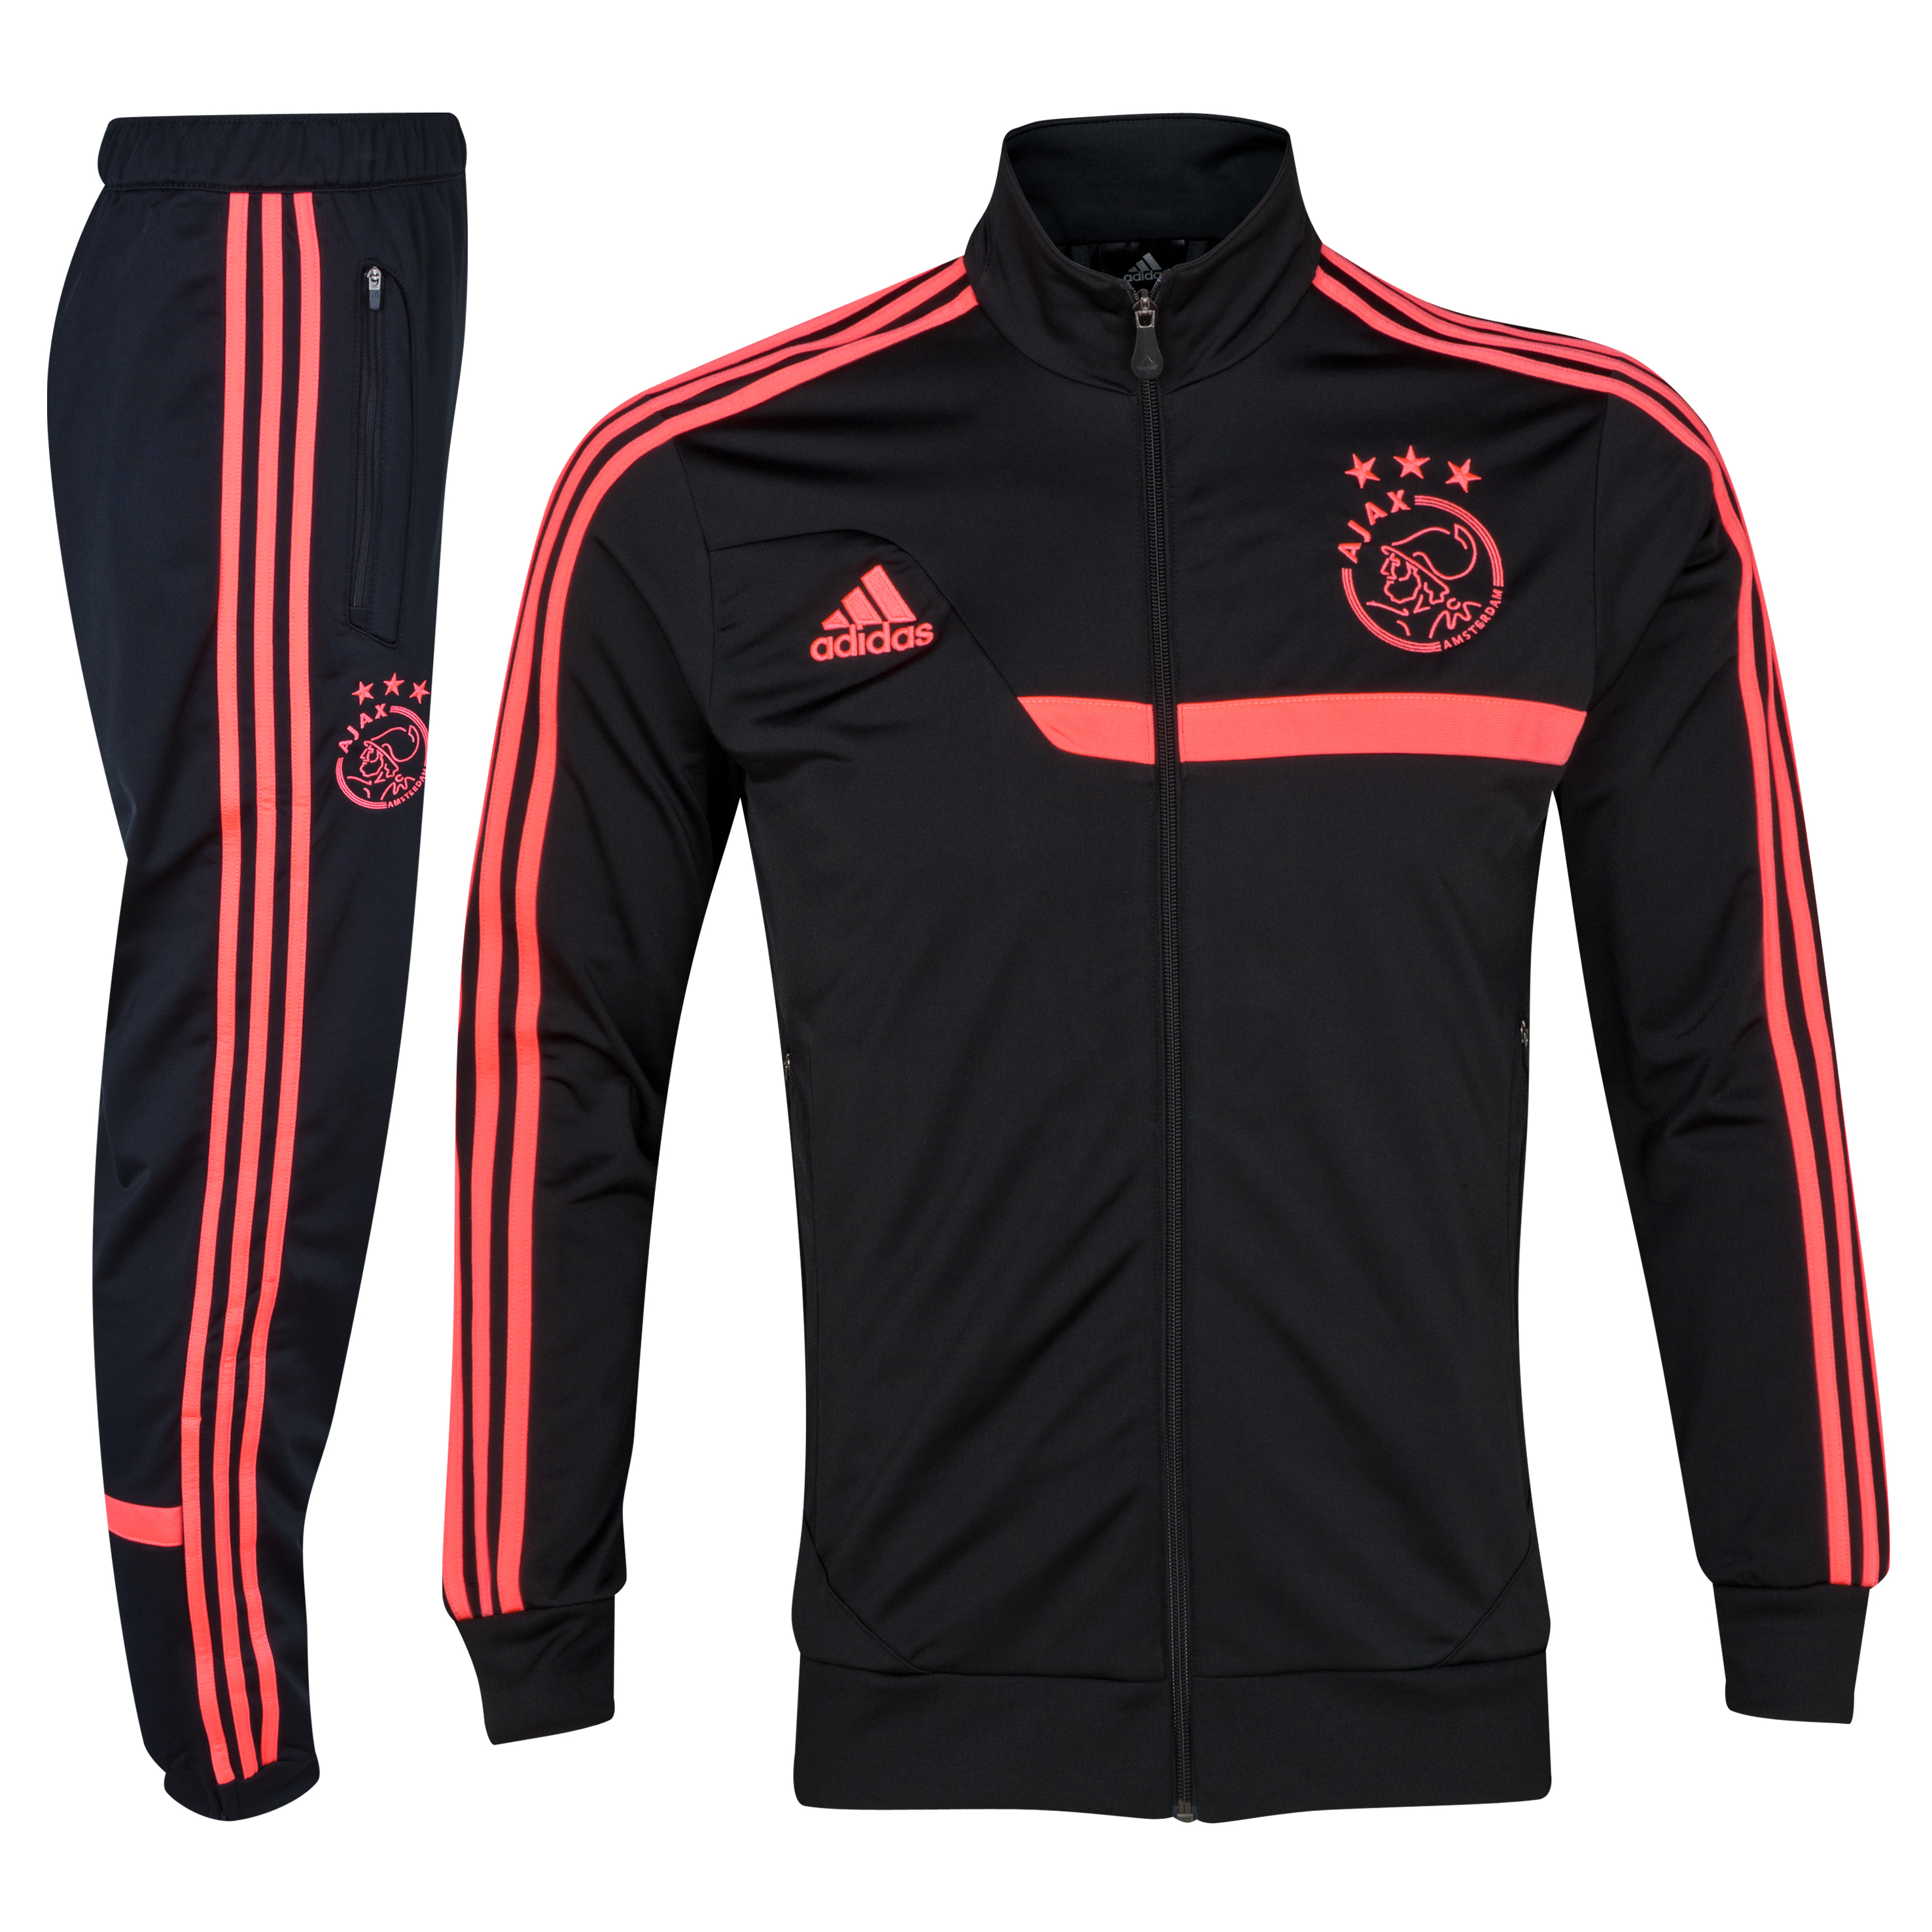 Ajax Presentation Suit - Black/Red Zest